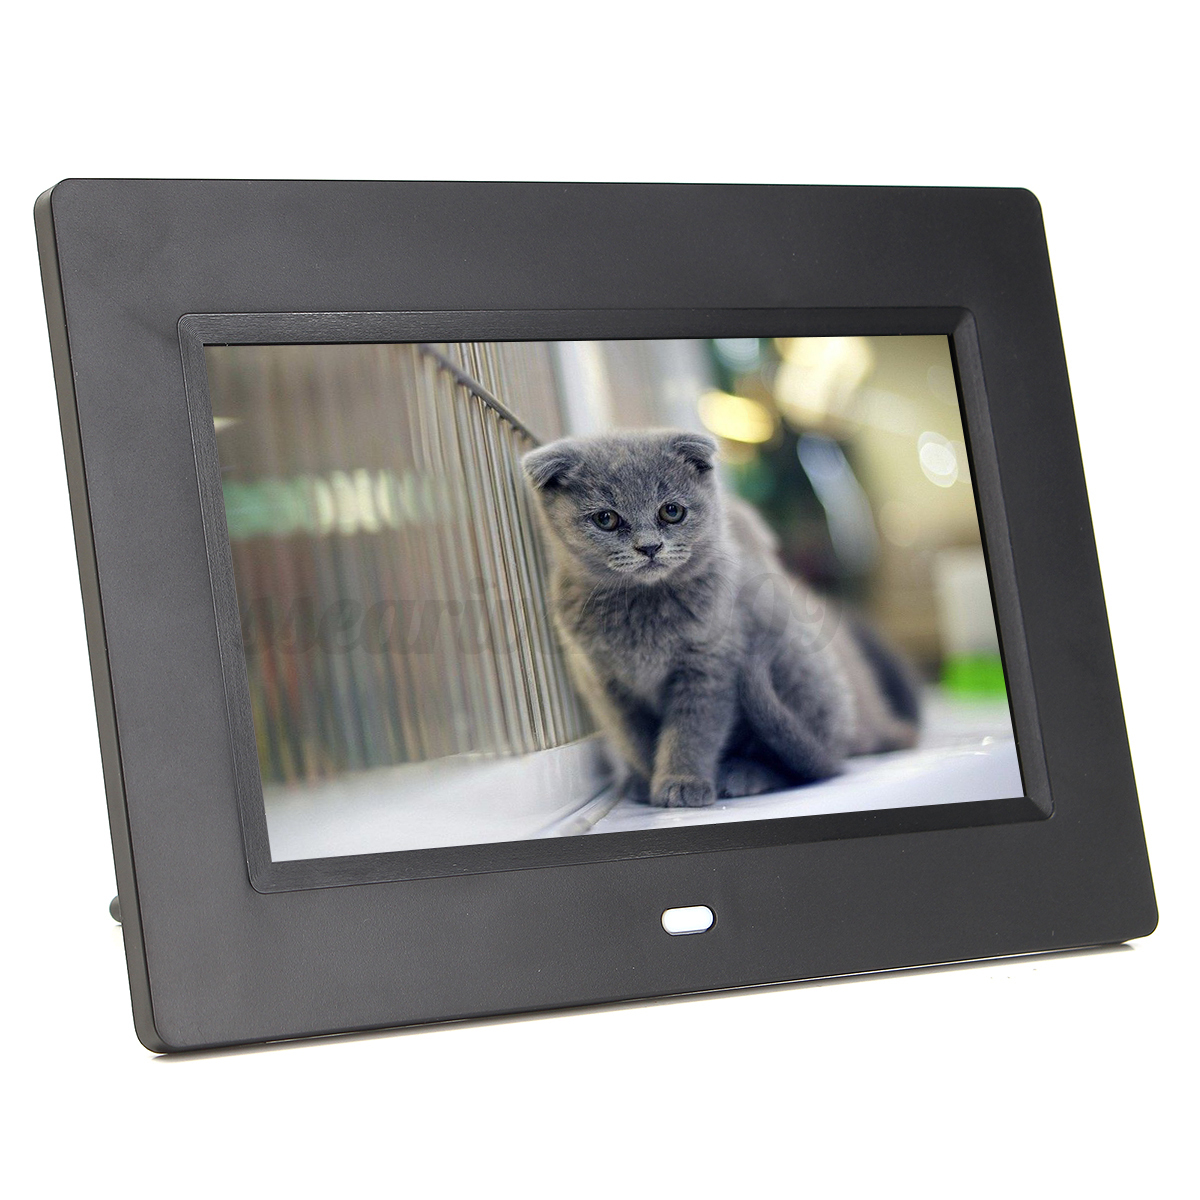 Digital Audio Video Photography: 7'' LCD Digital Photo Frame Picture Video Audio MP3 Player